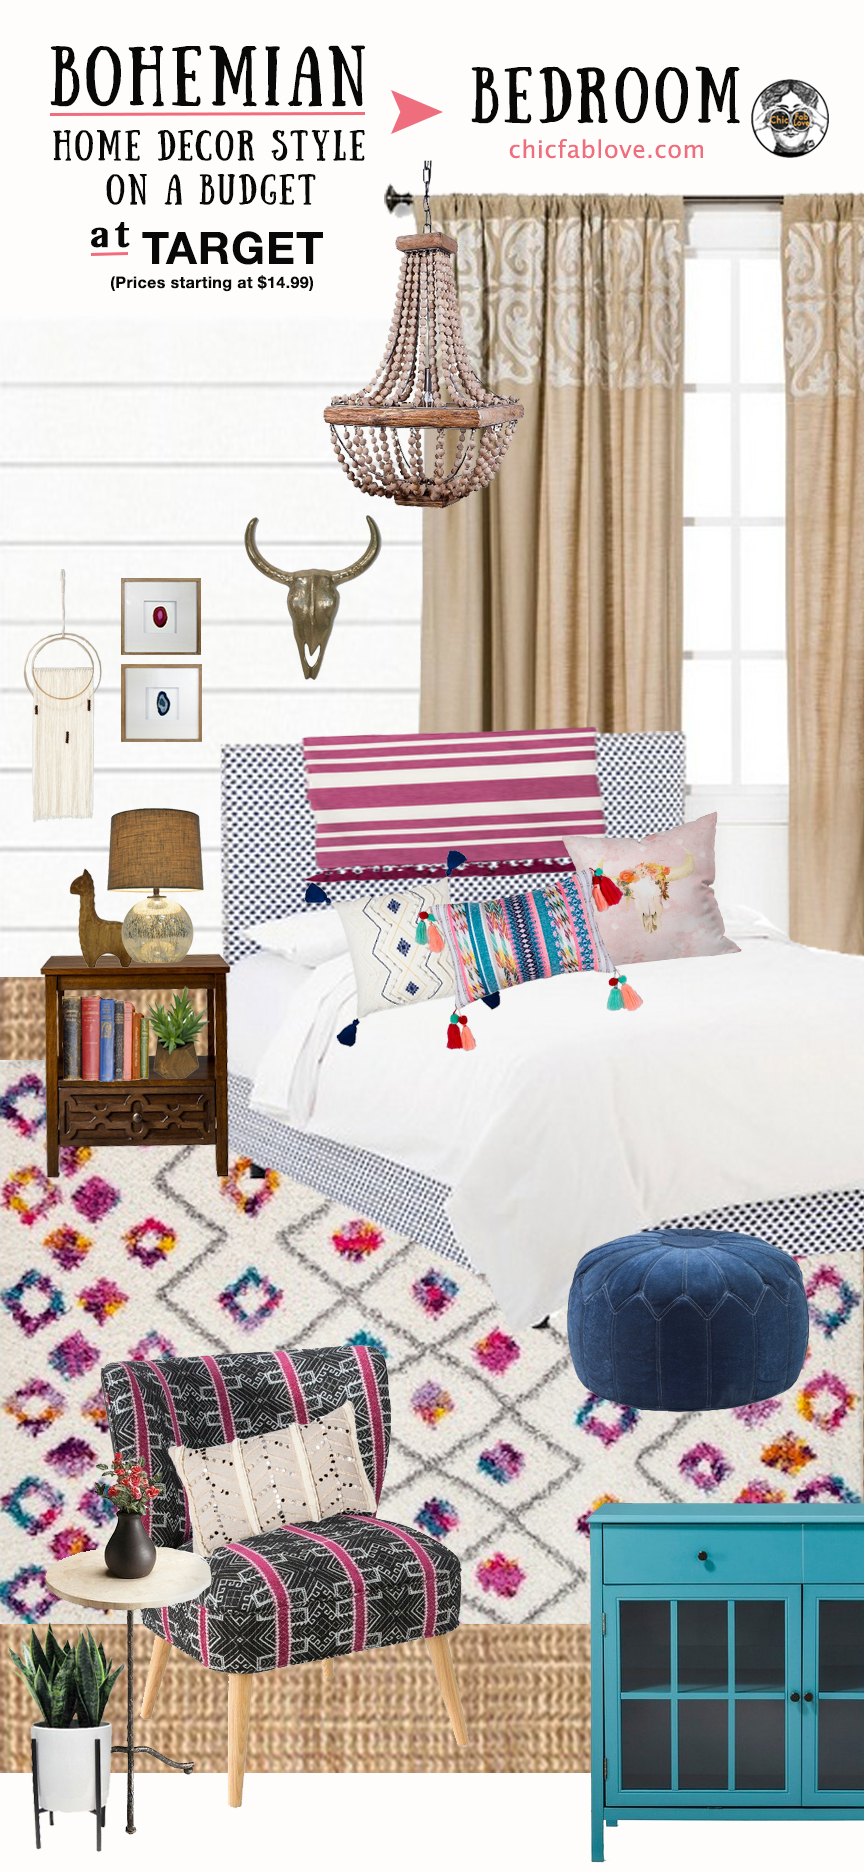 Bohemian Home Decor Style on a Budget at Target - Chic+Fab ... on Bohemian Bedroom Ideas On A Budget  id=28292